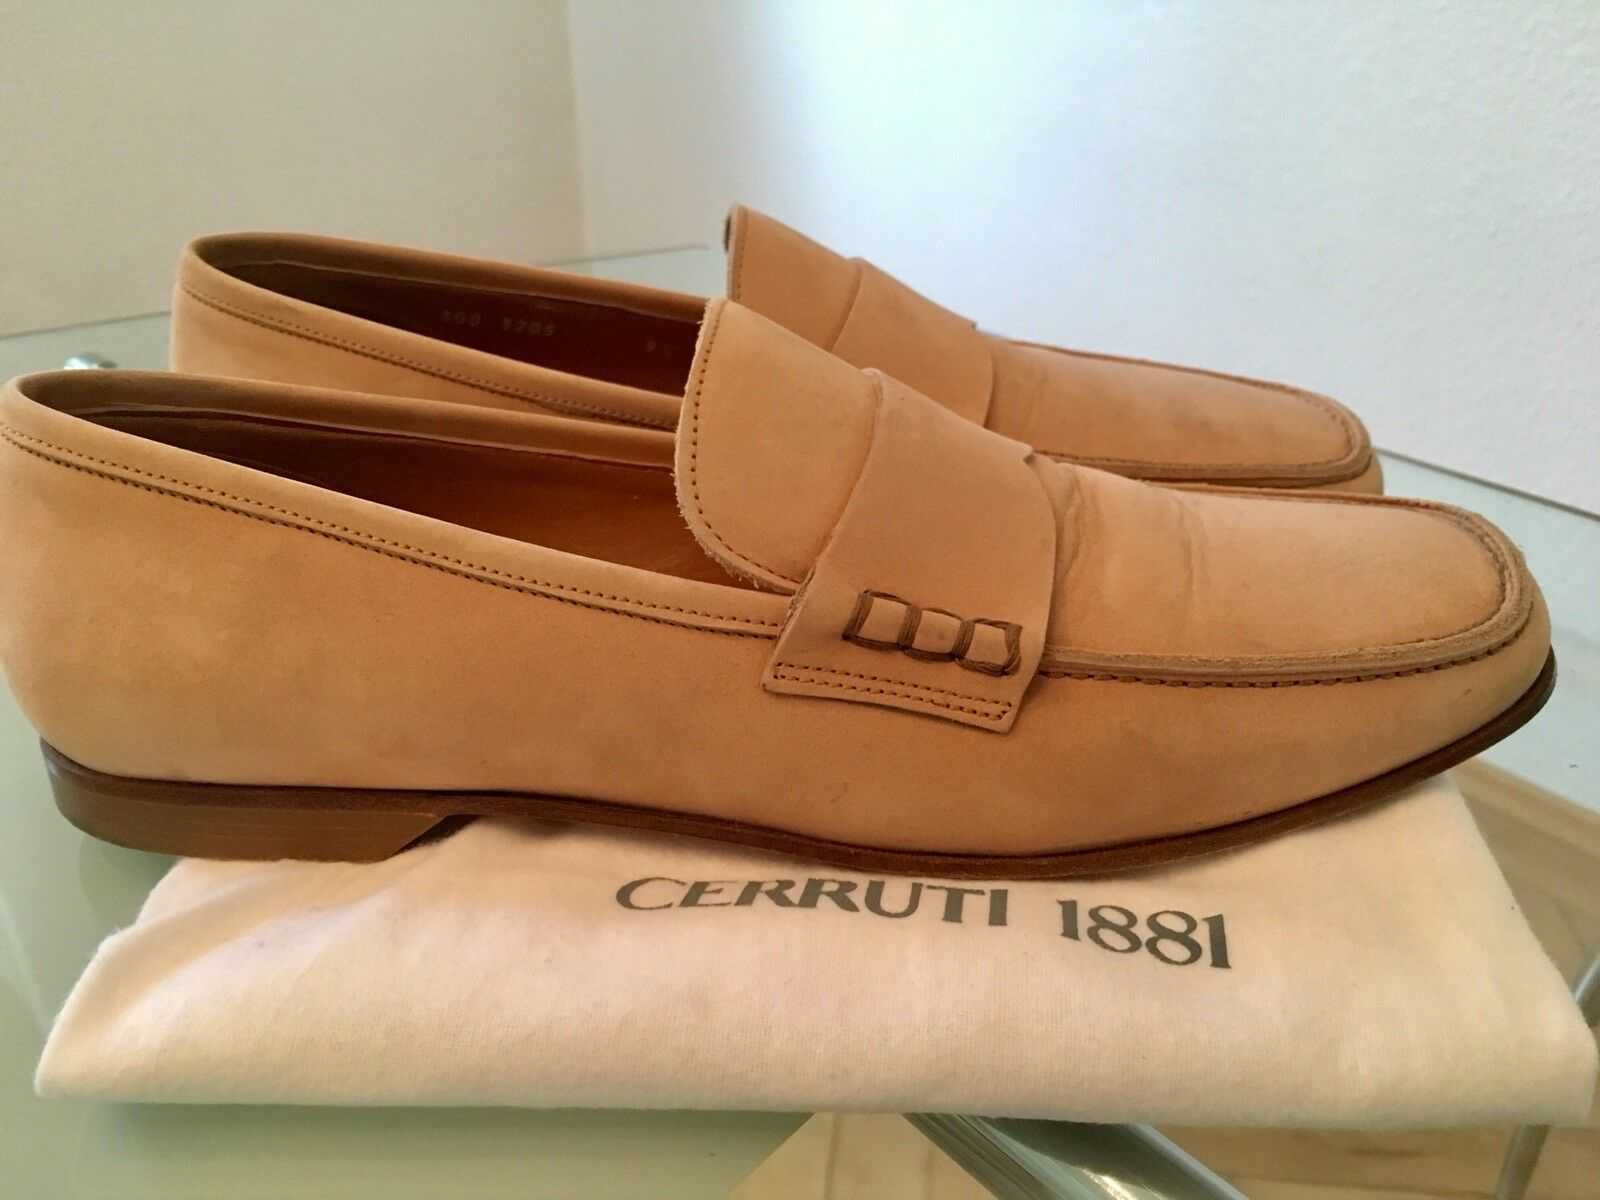 Luxus Cerruti 1881 Slipper Business Herrenschuhe Beige Gr.9.5(43/43.5)